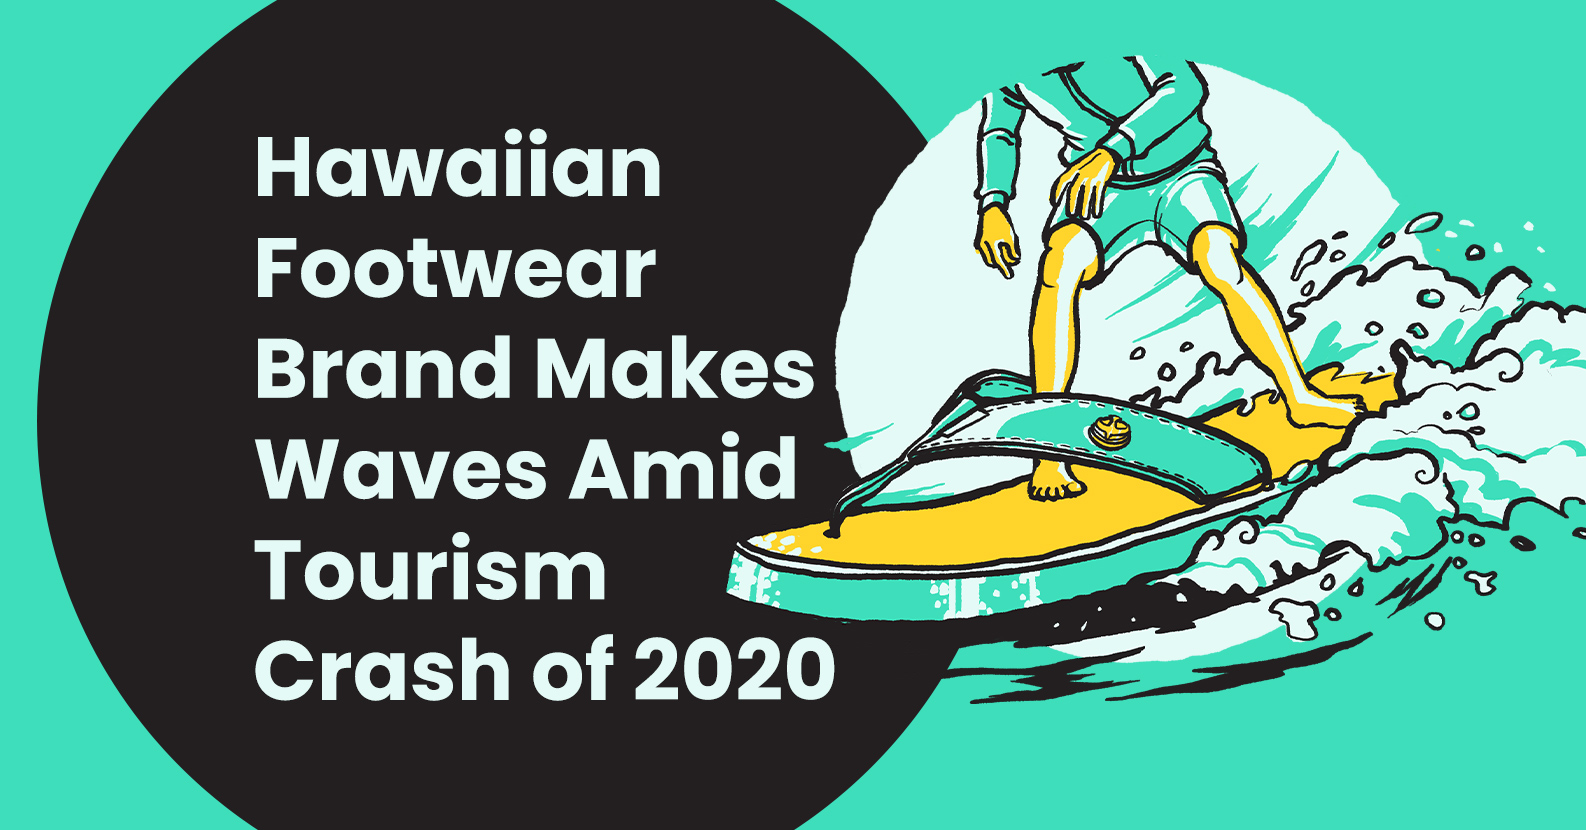 Hawaiian Footwear Brand Makes Waves Amid Tourism Crash of 2020